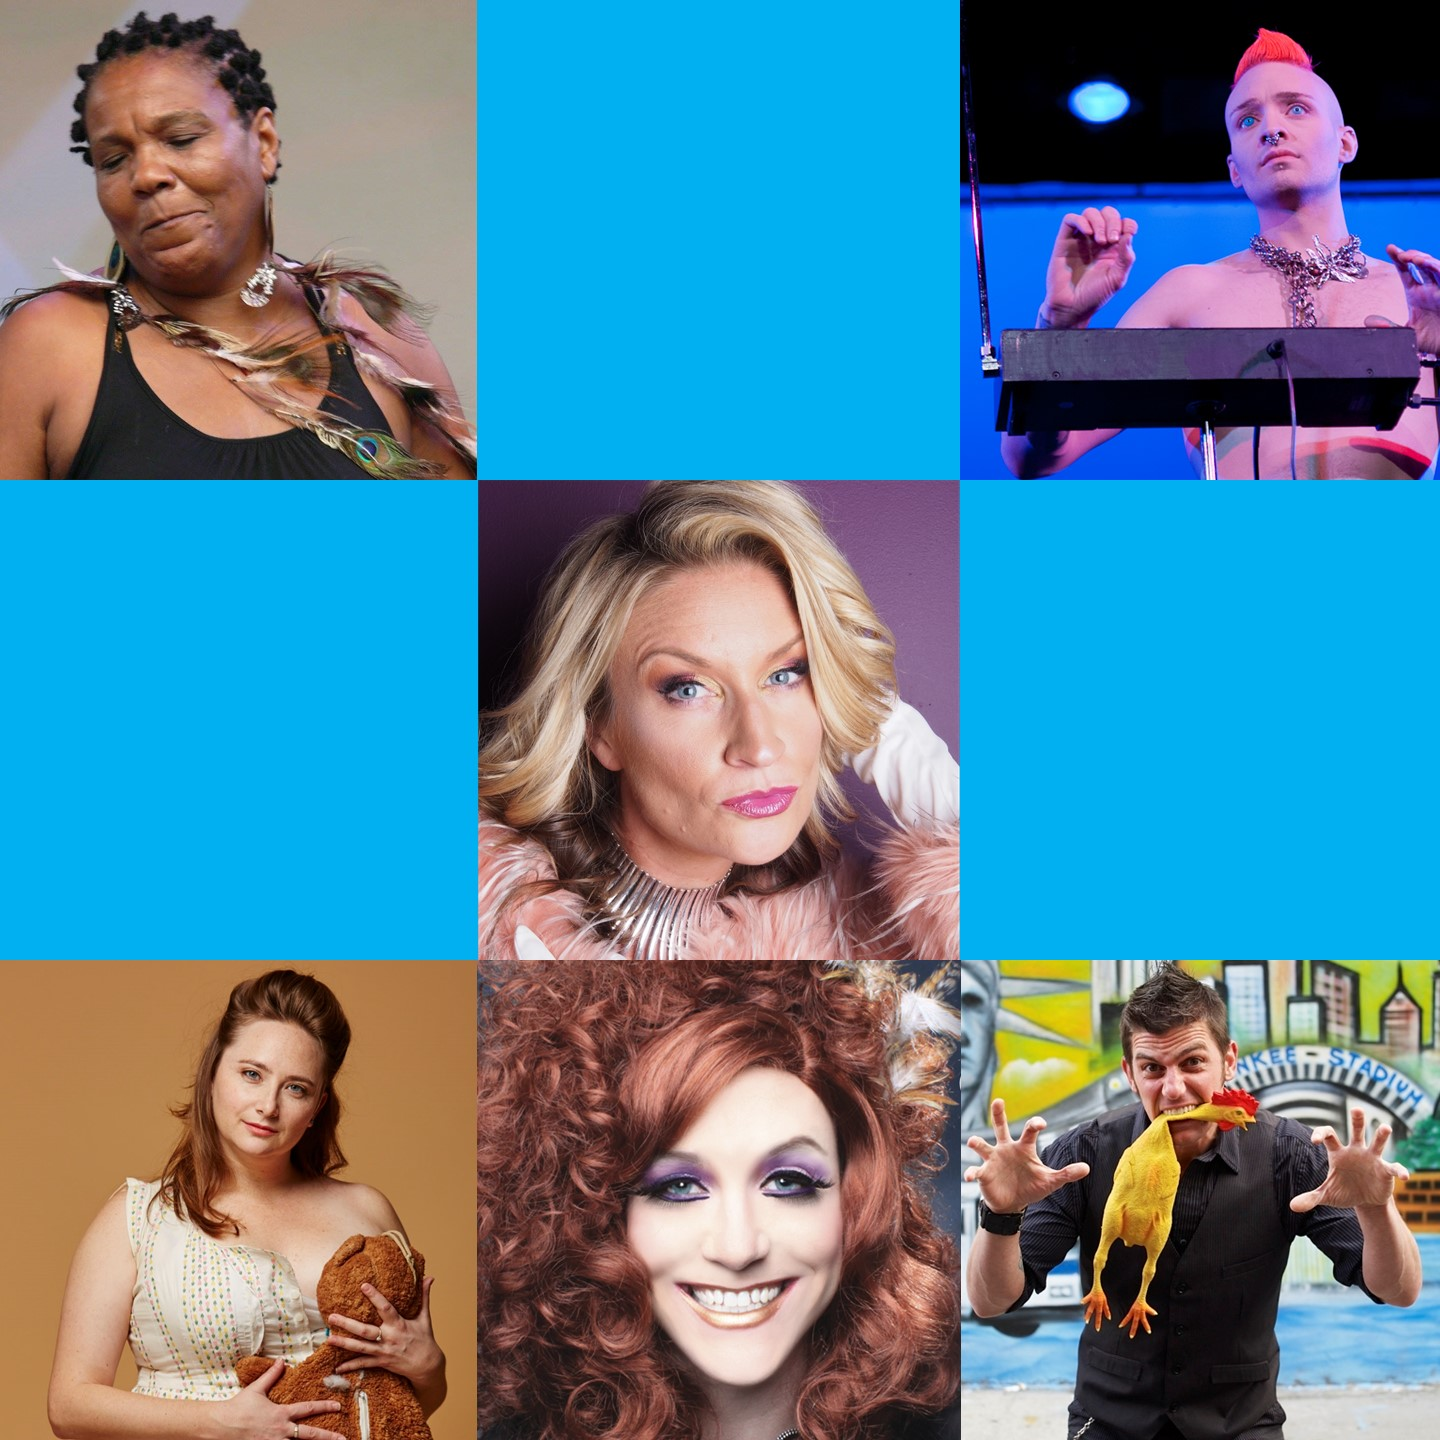 April 13 & 14, 2018   Hosted by Selena Coppock  FEATURING: Felice Rosser (Motown meets King Tubby) Magic Brian (Off-beat Comedy Magic) Katie Hartman (Irreverent Character Comedy) Cornelius Loy (Theremin Virtuoso) Miss Mona Mour (Drag Superstar)